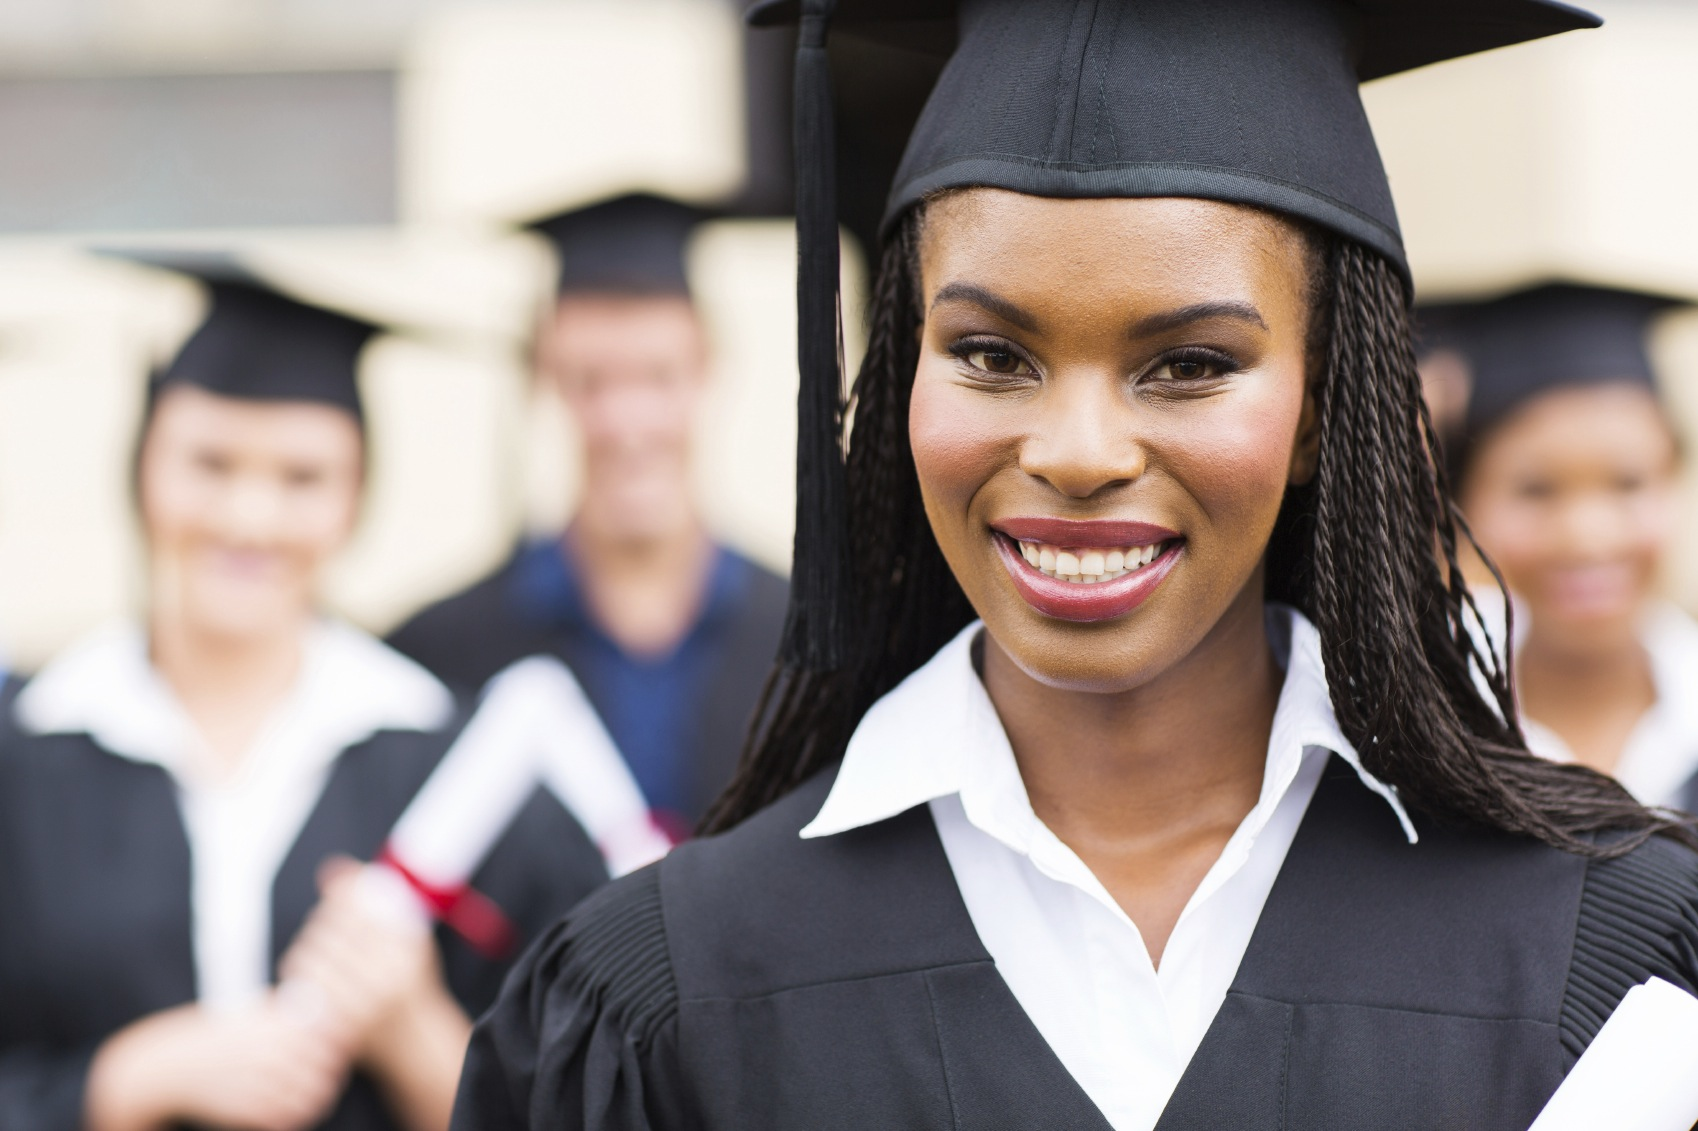 Parmalat wants graduates in ITC for an internship 2018 for 2018 / 2022